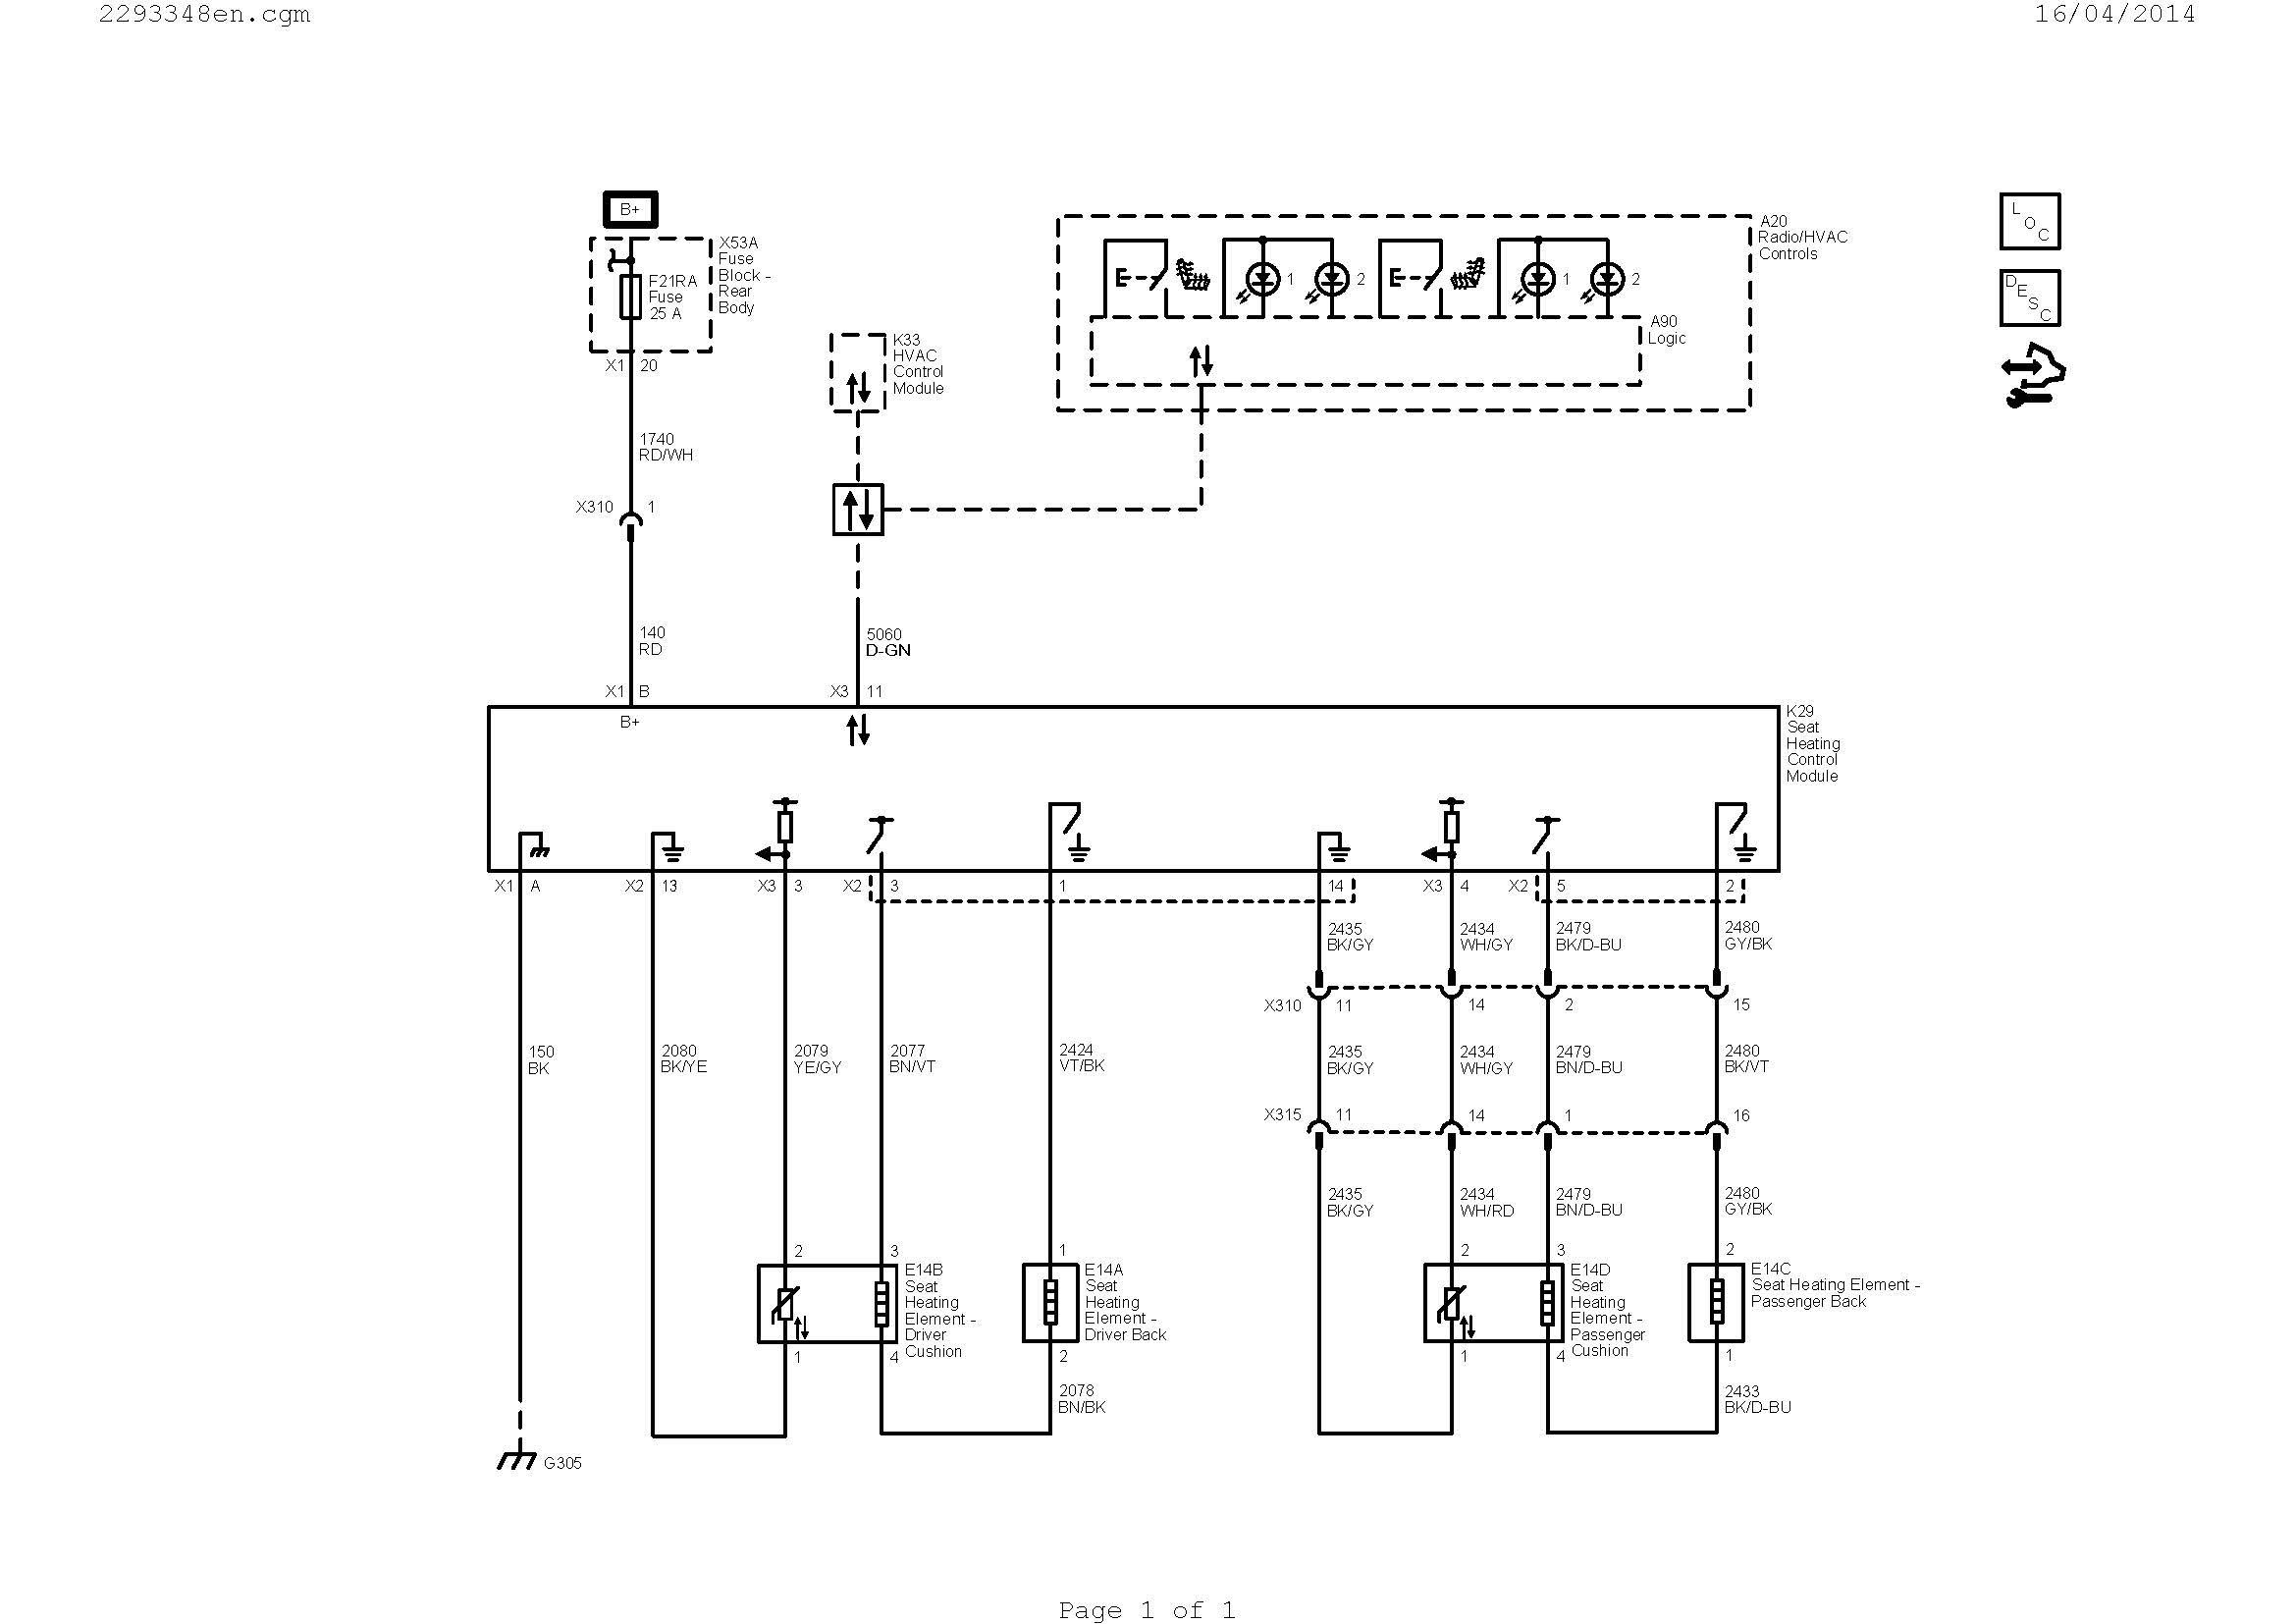 control relay wiring diagram Download-Wiring Diagram For Changeover Relay Inspirationa Wiring Diagram Ac Valid Hvac Diagram Best Hvac Diagram 0d – Wire 3-k